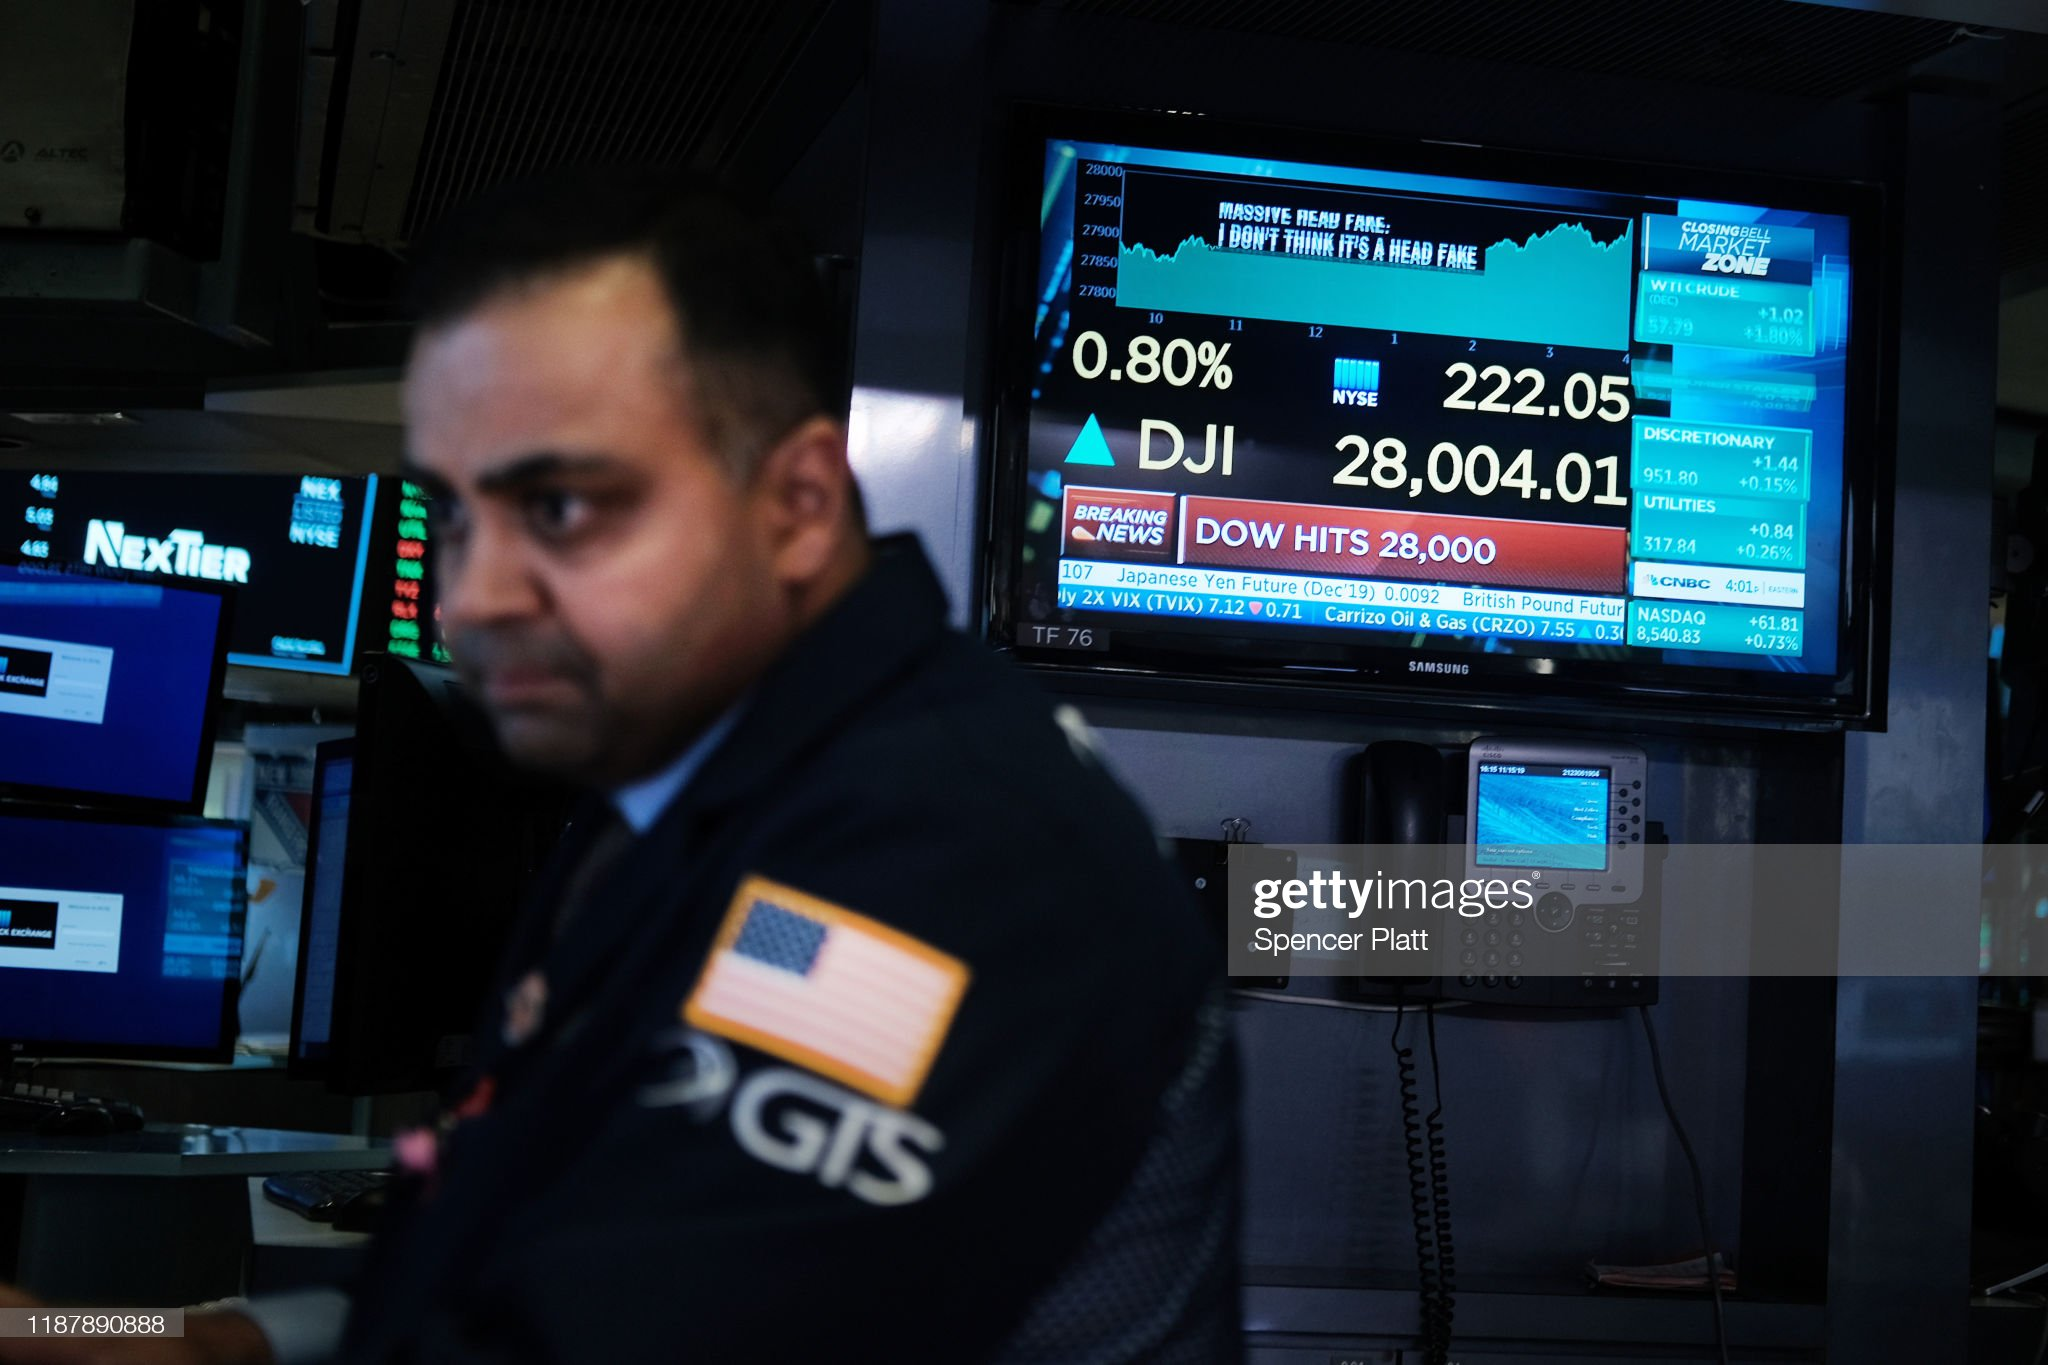 Dow Jones Industrial Average Closes At New High, Crossing Over 28,000 : News Photo